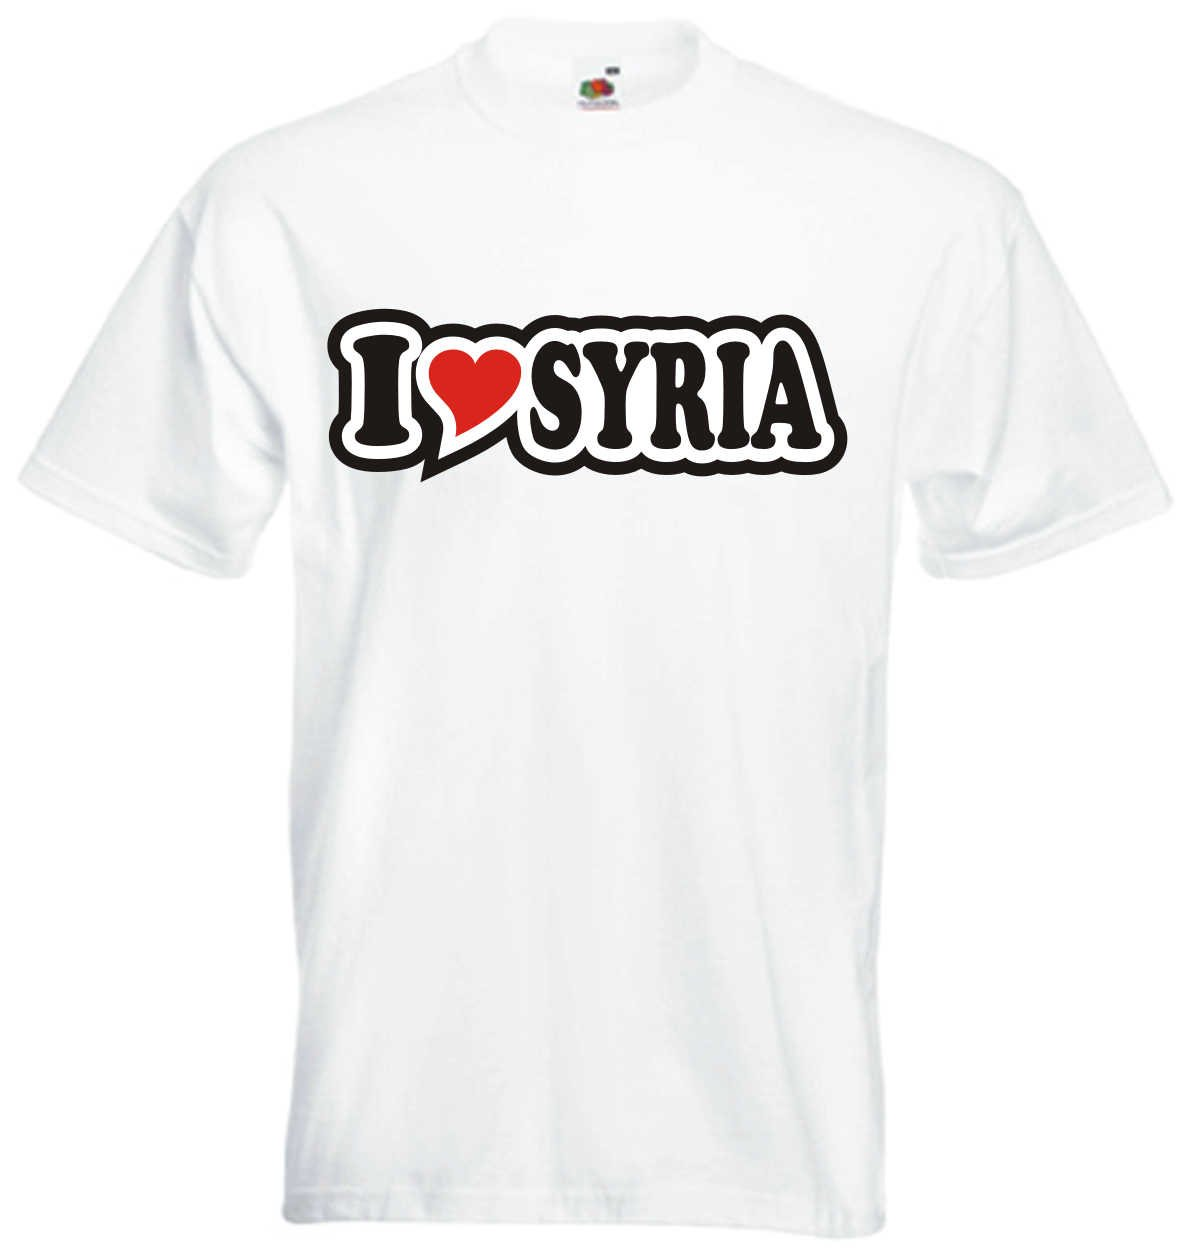 I Love Heart T-Shirt Men I LOVE SYRIA Black Dragon